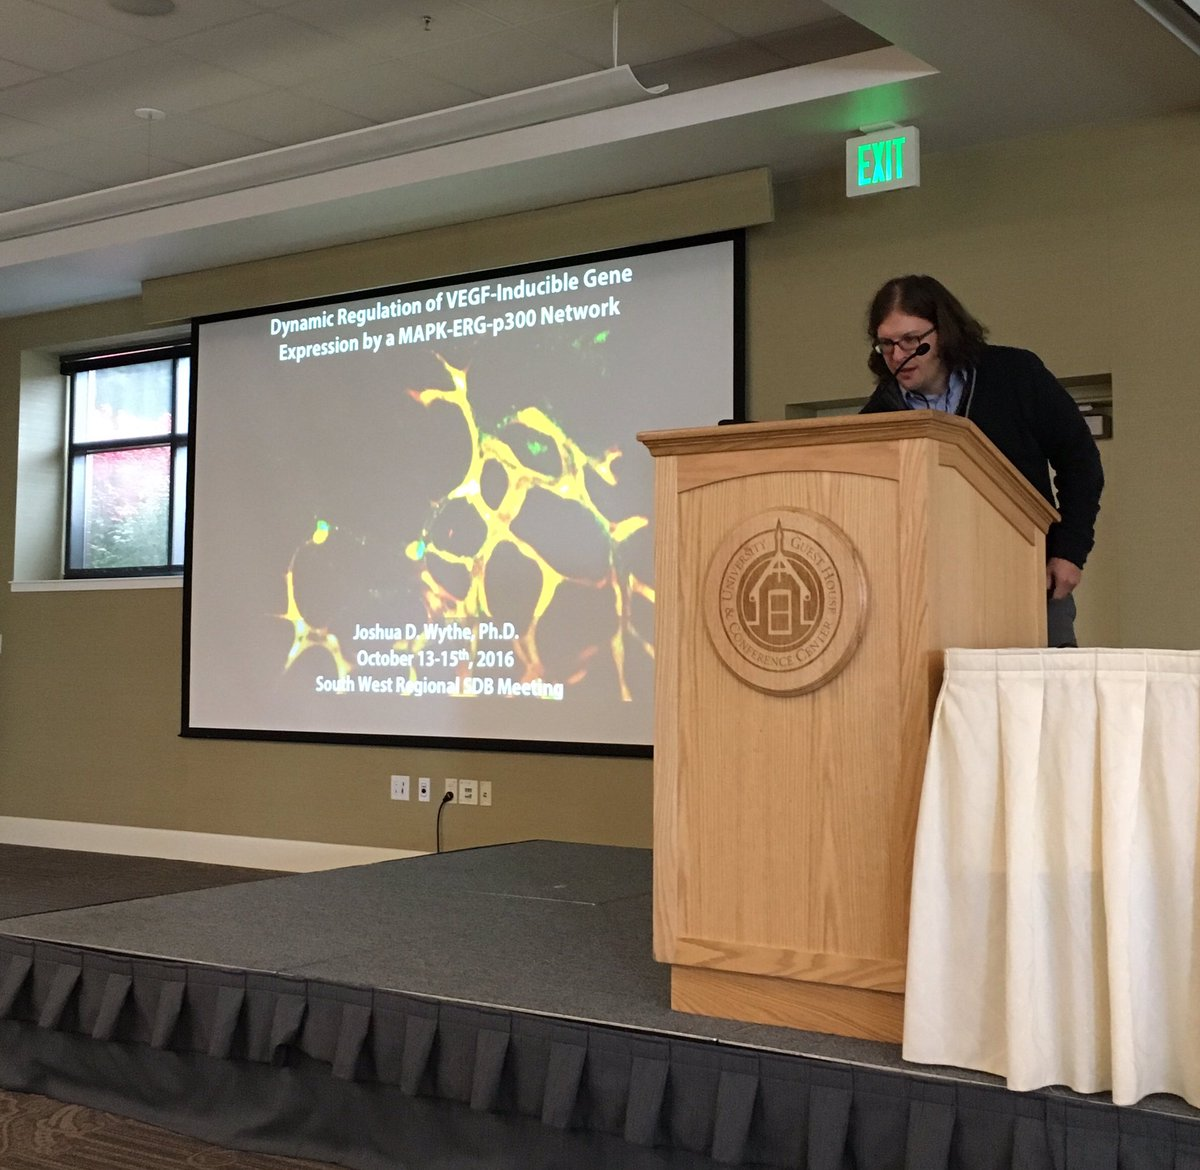 Giving a talk at the South West Regional SDB meeting at Salt Lake City, October, 2016.